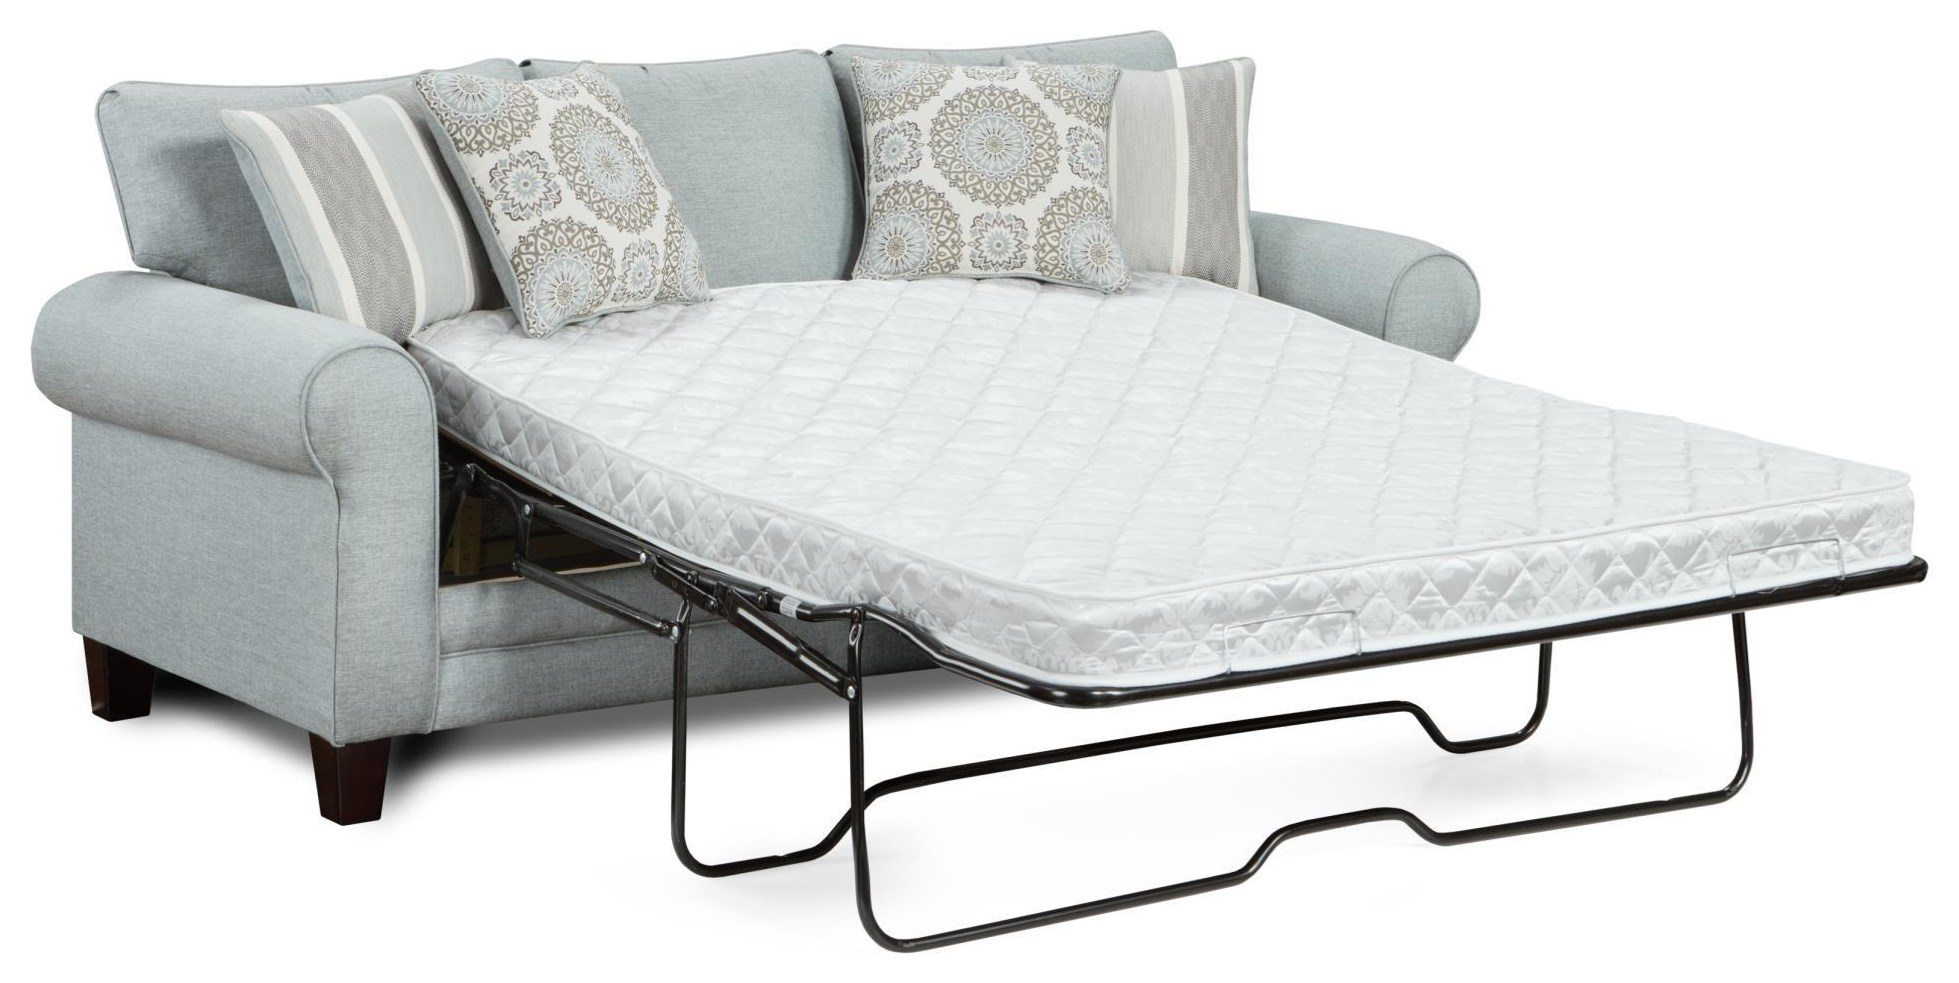 Mysteria Mysteria Queen Sleeper by Fusion Furniture at Morris Home